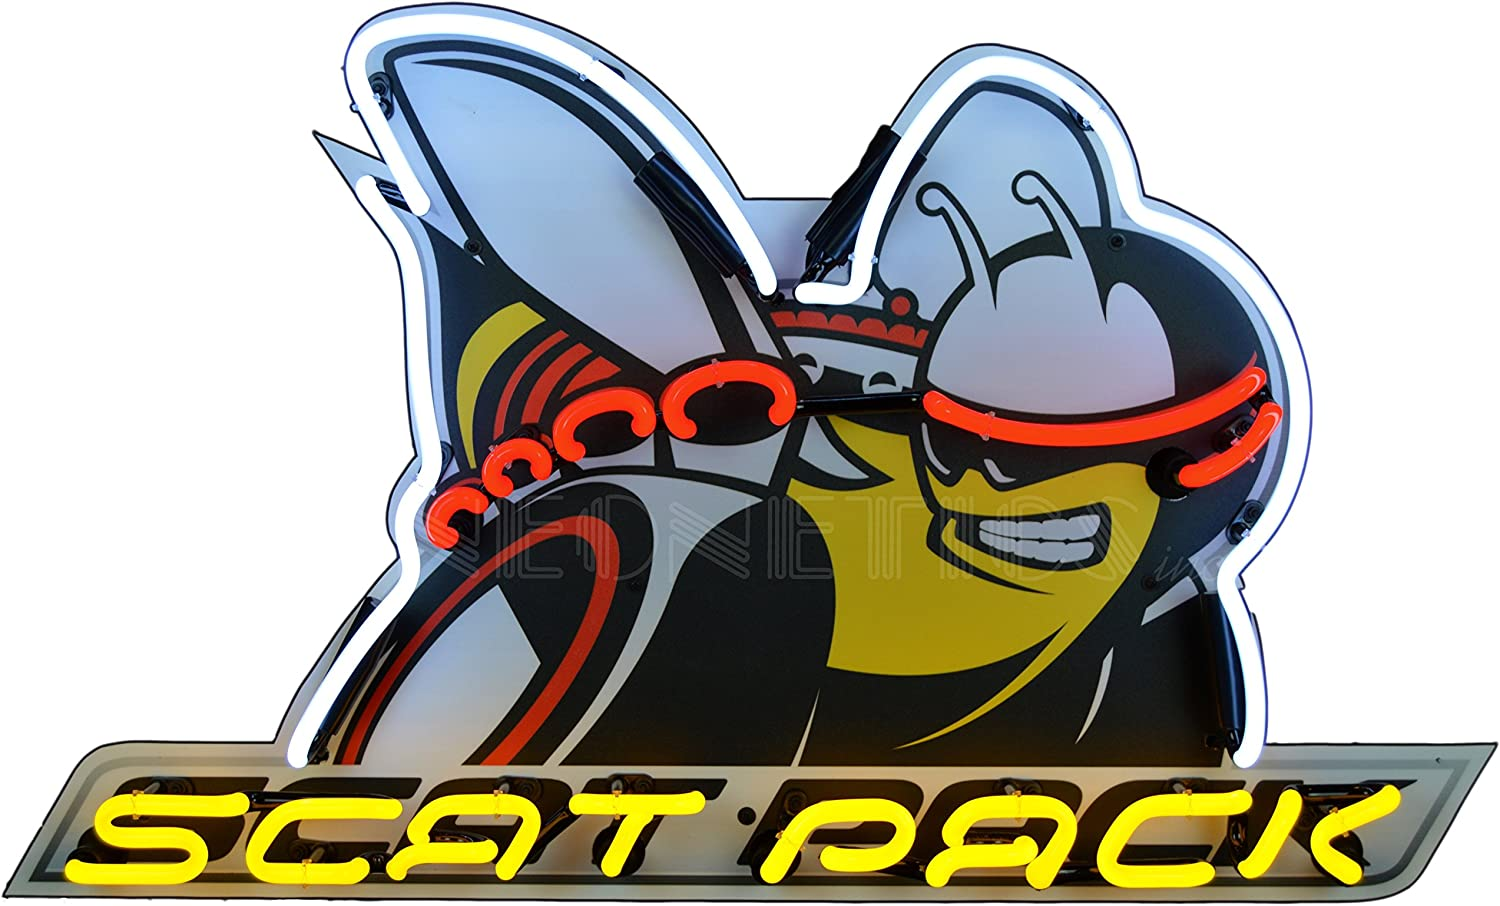 Scat Pack Dodge Sign Bee Garage Truck Car Vintage Style Gas Oil Bar Pub Club